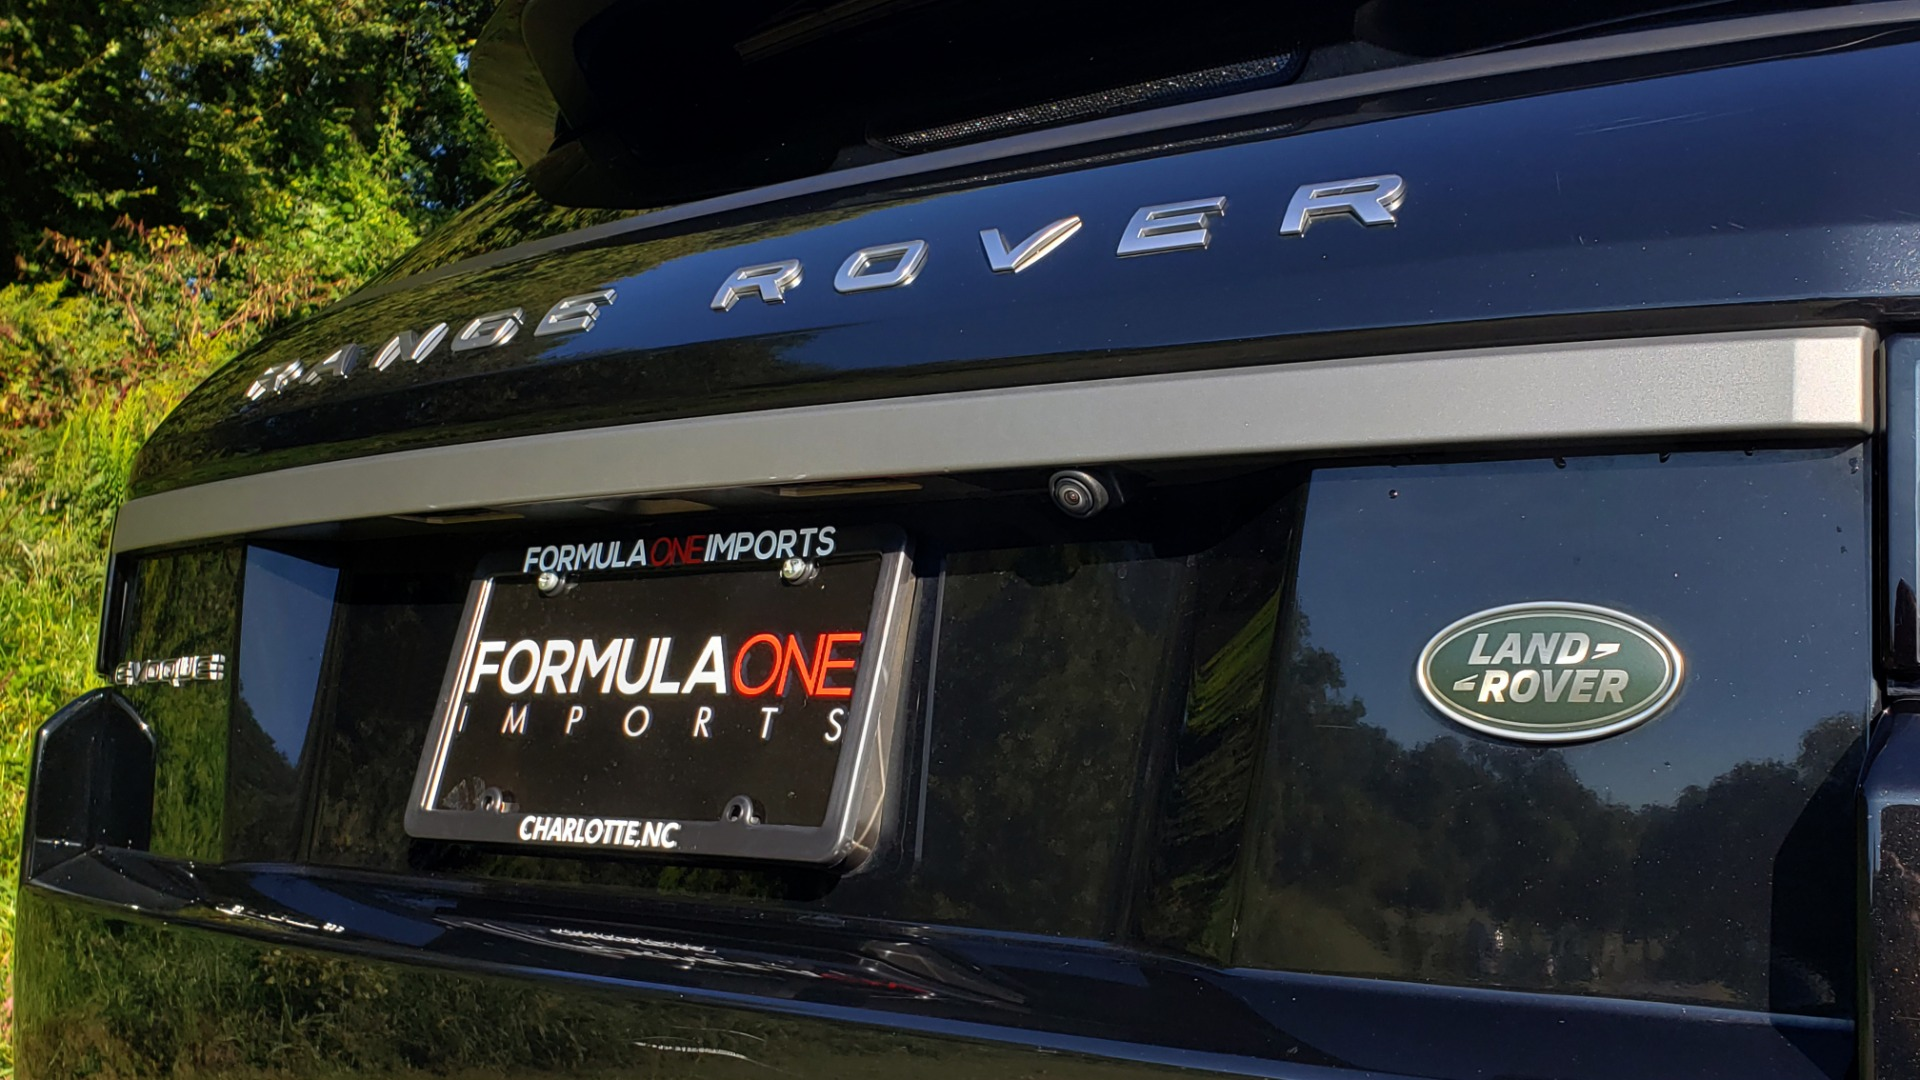 Used 2015 Land Rover RANGE ROVER EVOQUE PURE PREMIUM / PURE PLUS / CLIMATE COMFORT / REARVIEW for sale Sold at Formula Imports in Charlotte NC 28227 34